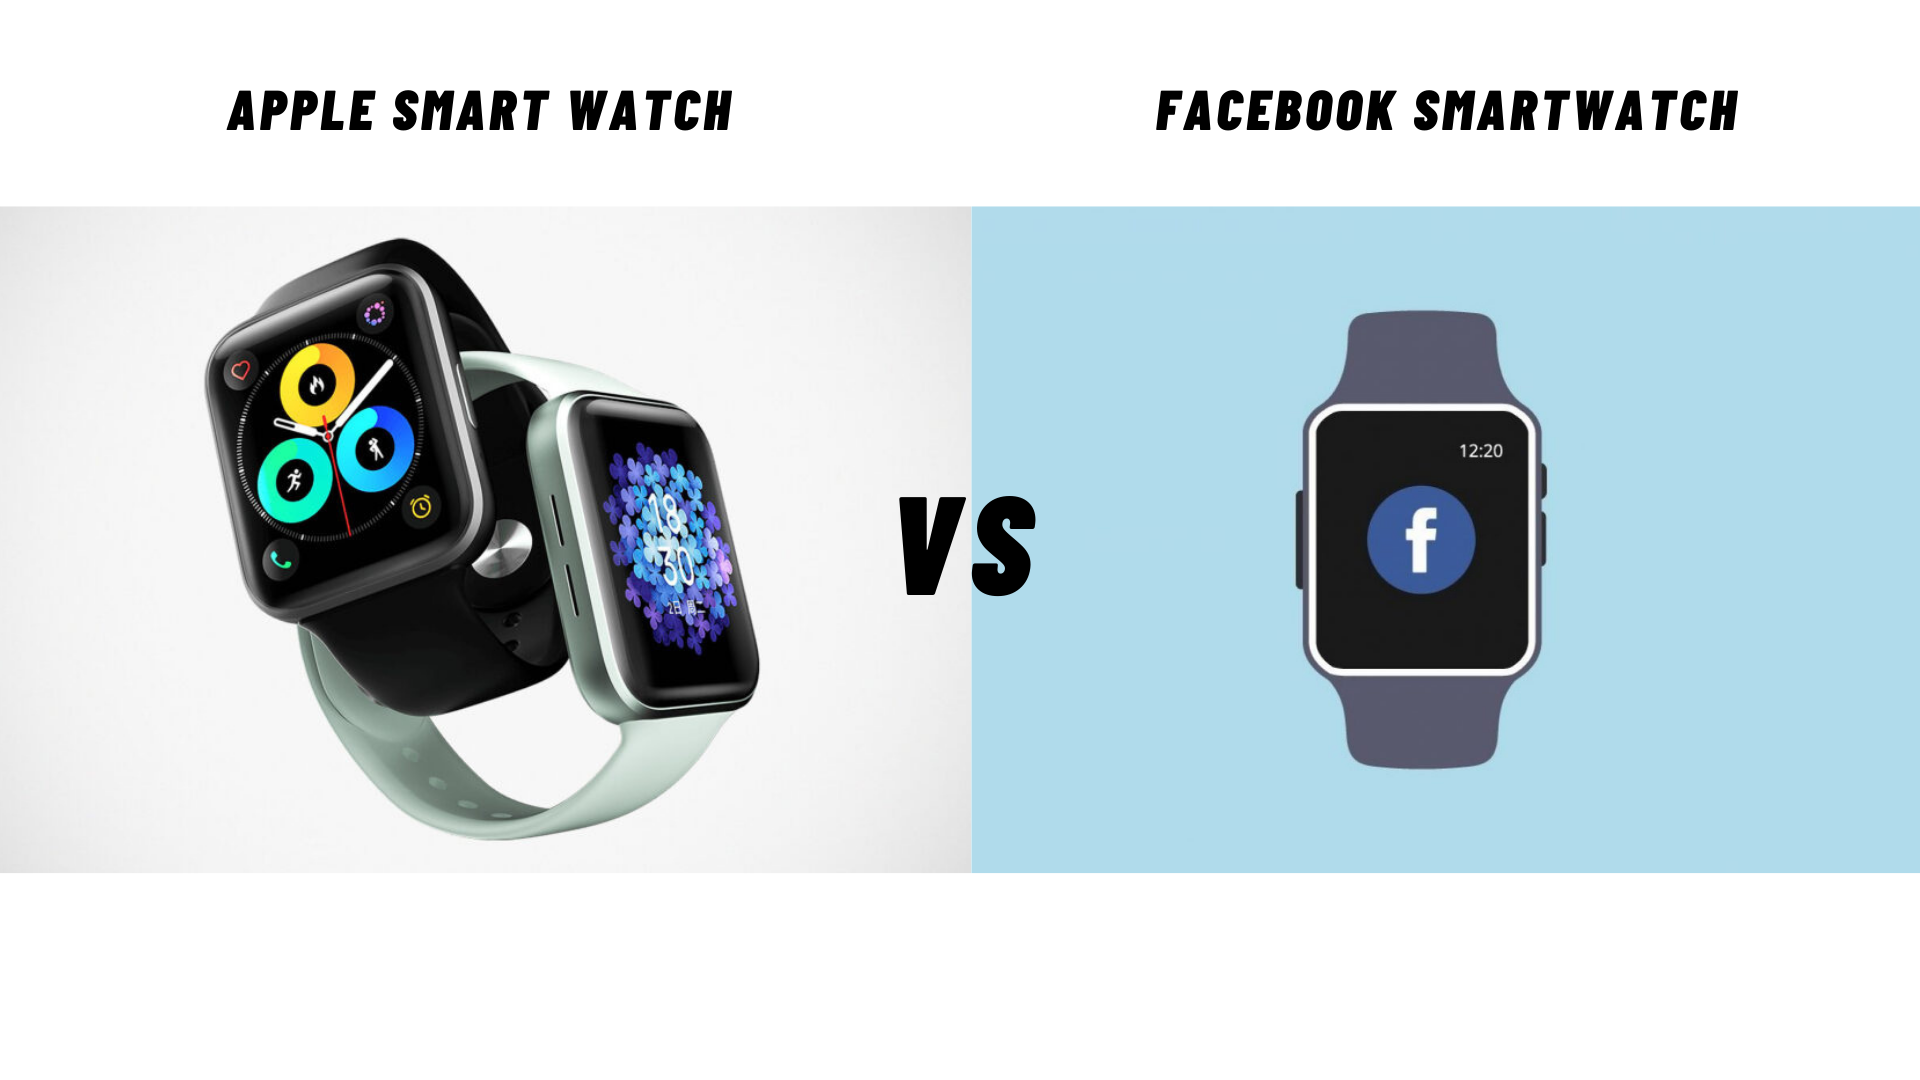 Will Facebook Watch Compete Against Apple Watch Series?